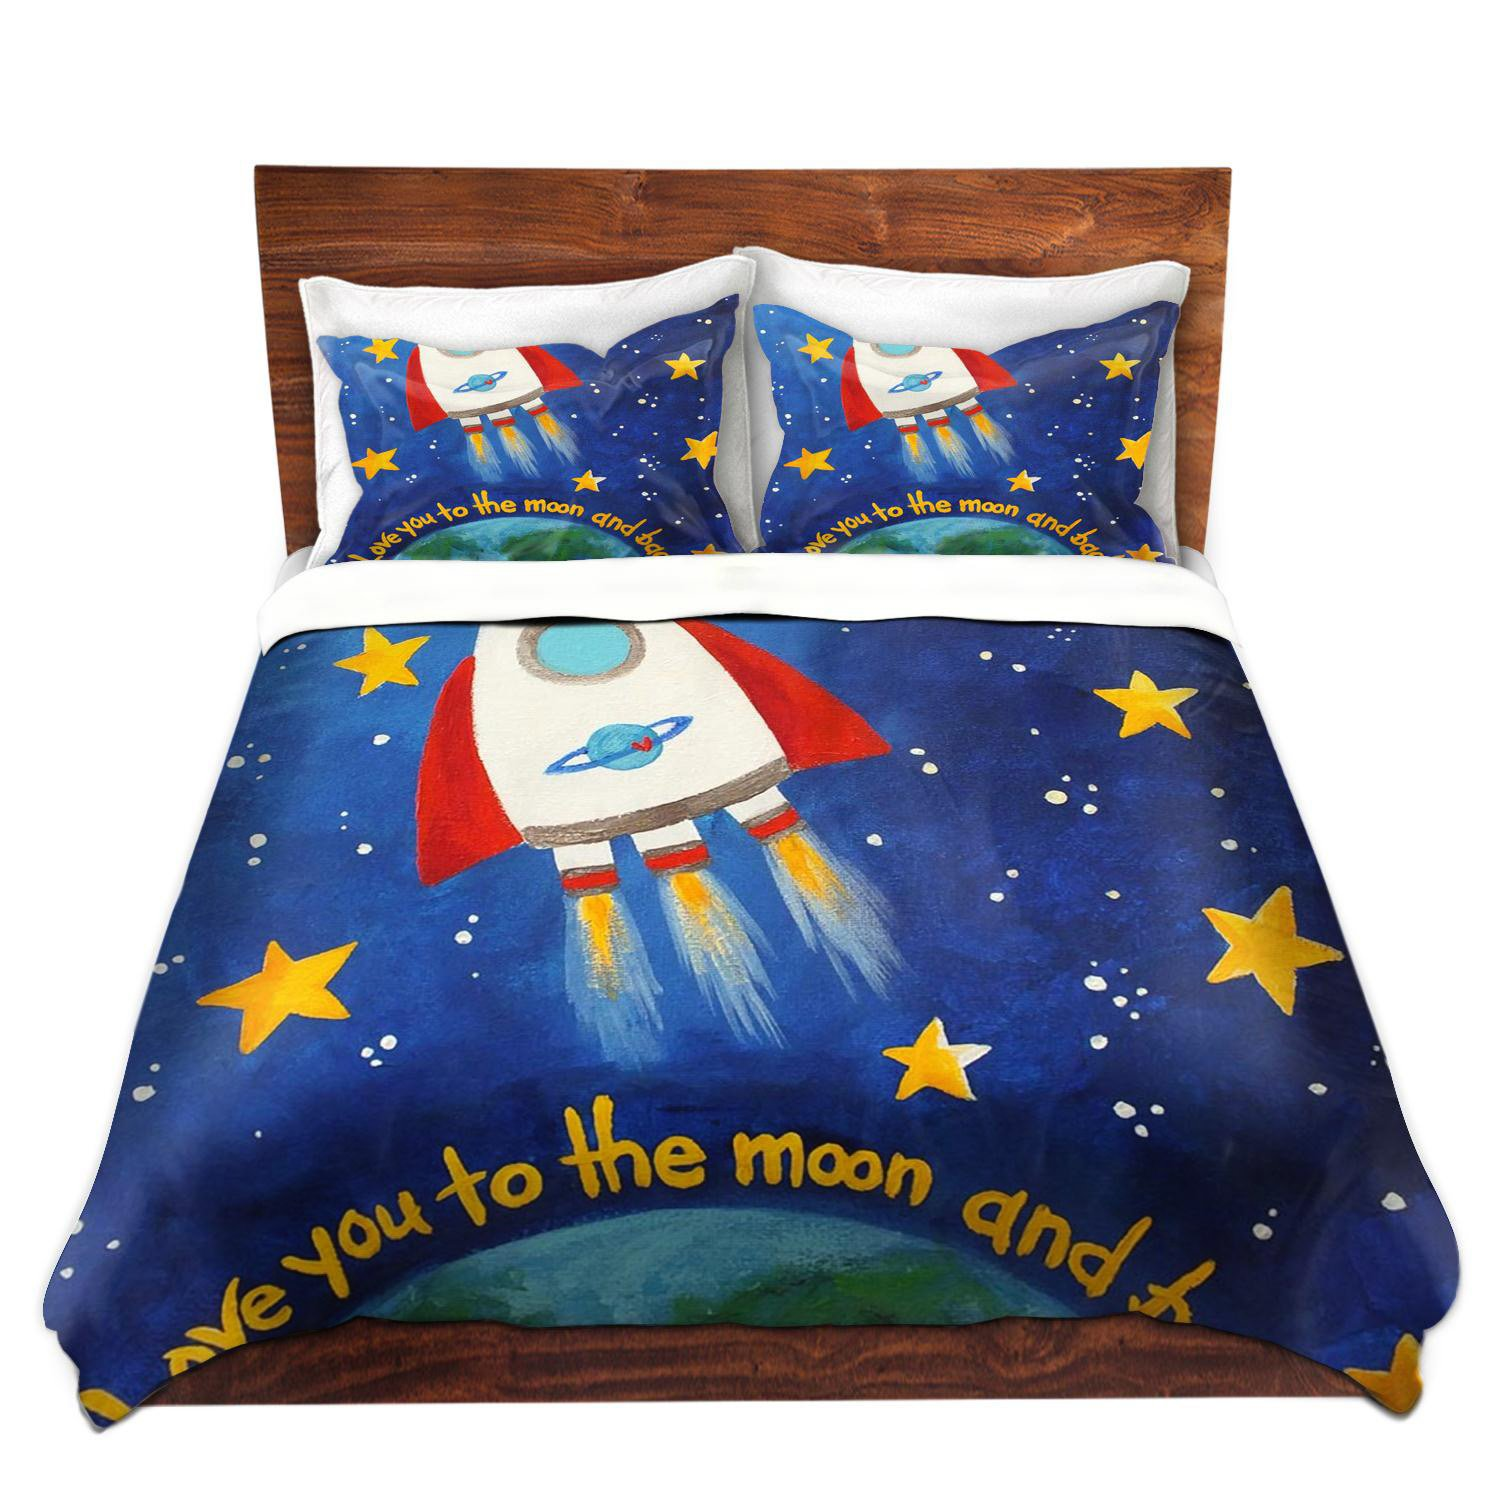 DiaNoche Designs Nicola Joyner Njoy Art Unique Home Decor Bedding Ideas Love You to the Moon Rocket Cover, 7 Queen Duvet Sham Set by DiaNoche Designs (Image #1)